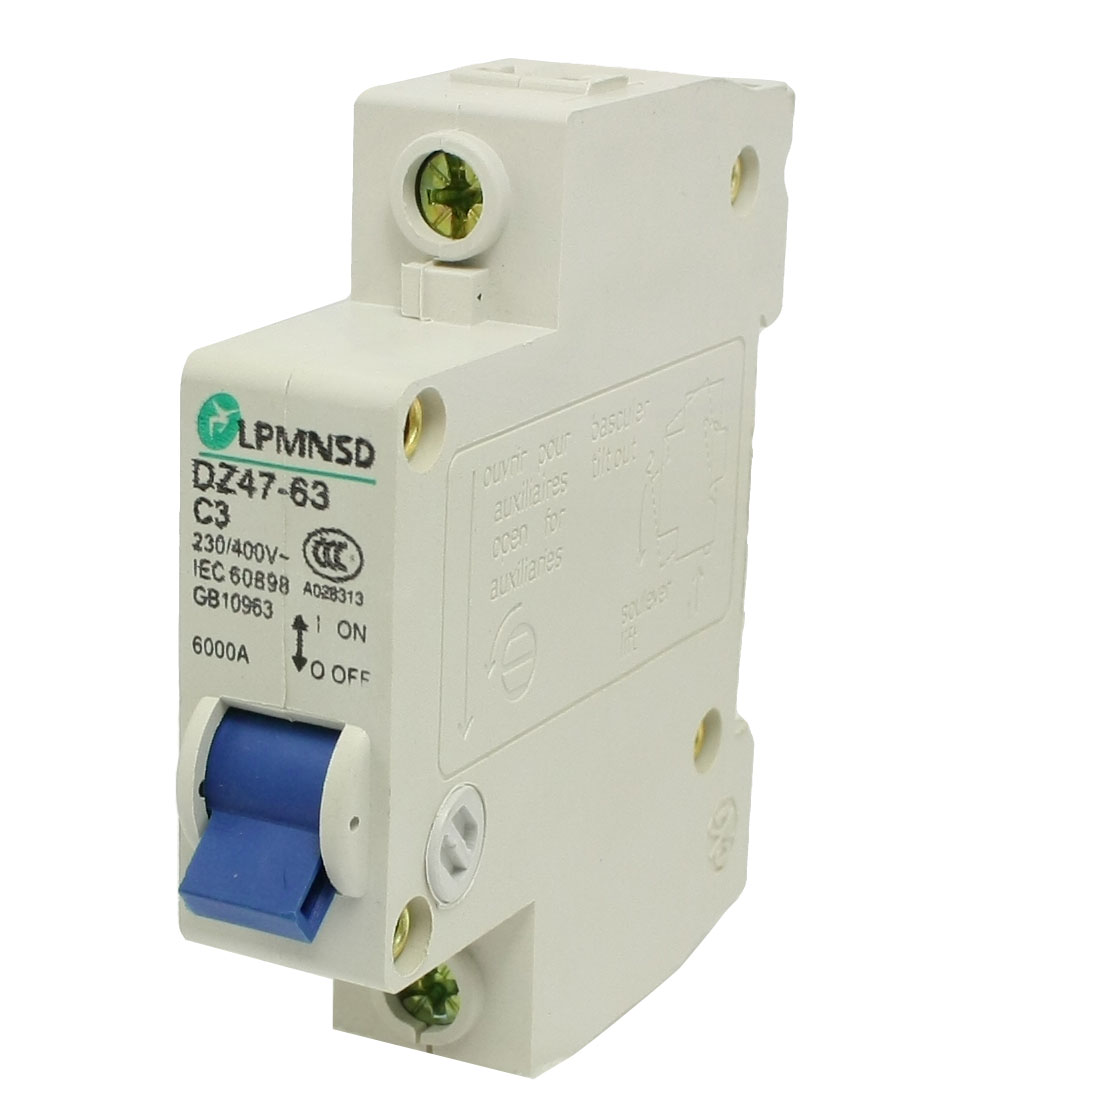 AC 240/400V Rated Current 3A Single Pole Miniature Circuit Breaker